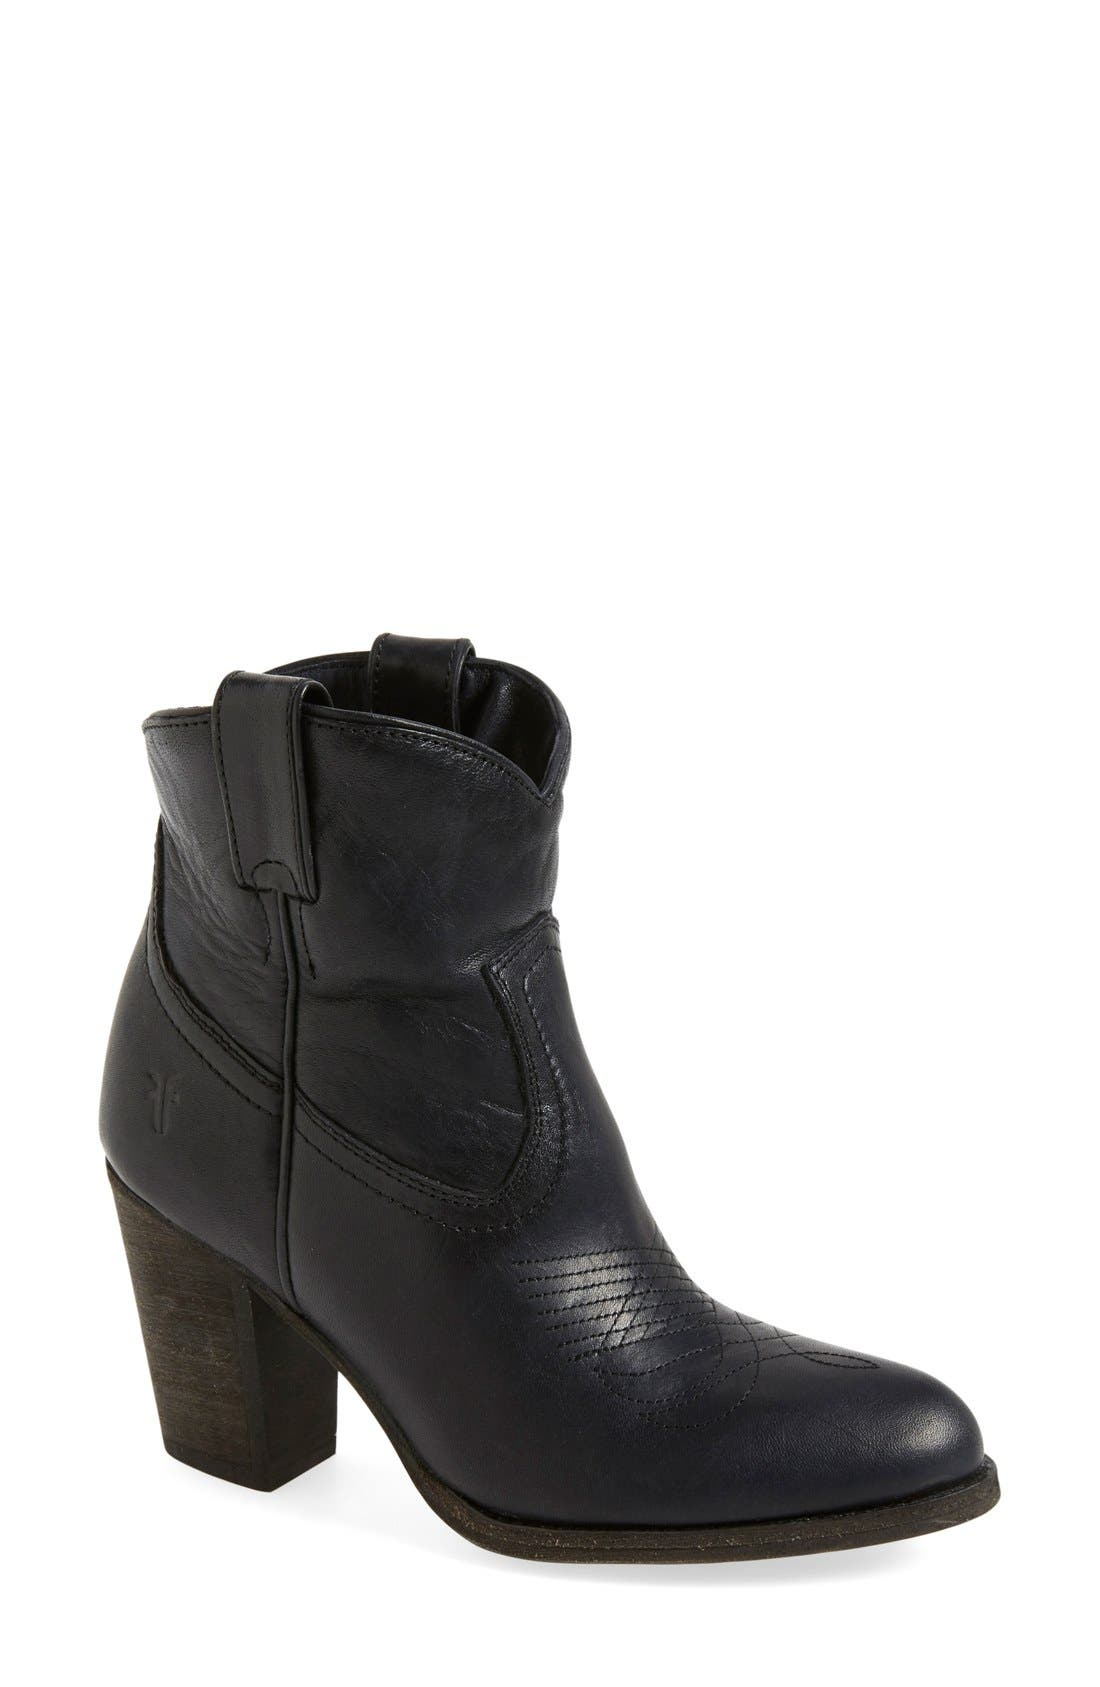 Alternate Image 1 Selected - Frye 'Ilana' Short Western Boot (Women)